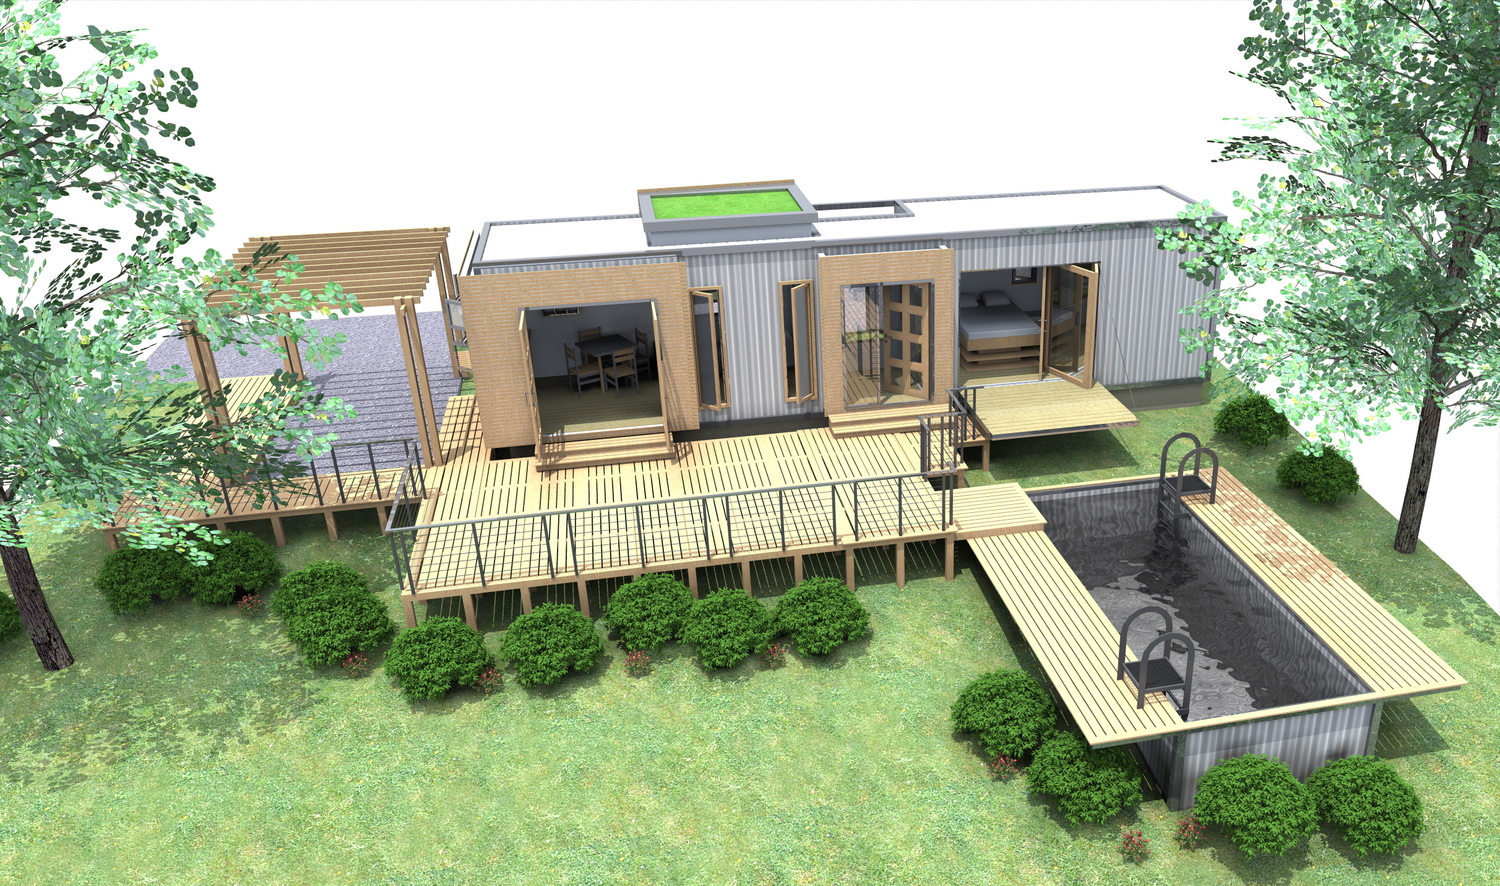 Shipping container homes june 2013 Shipping container home builders